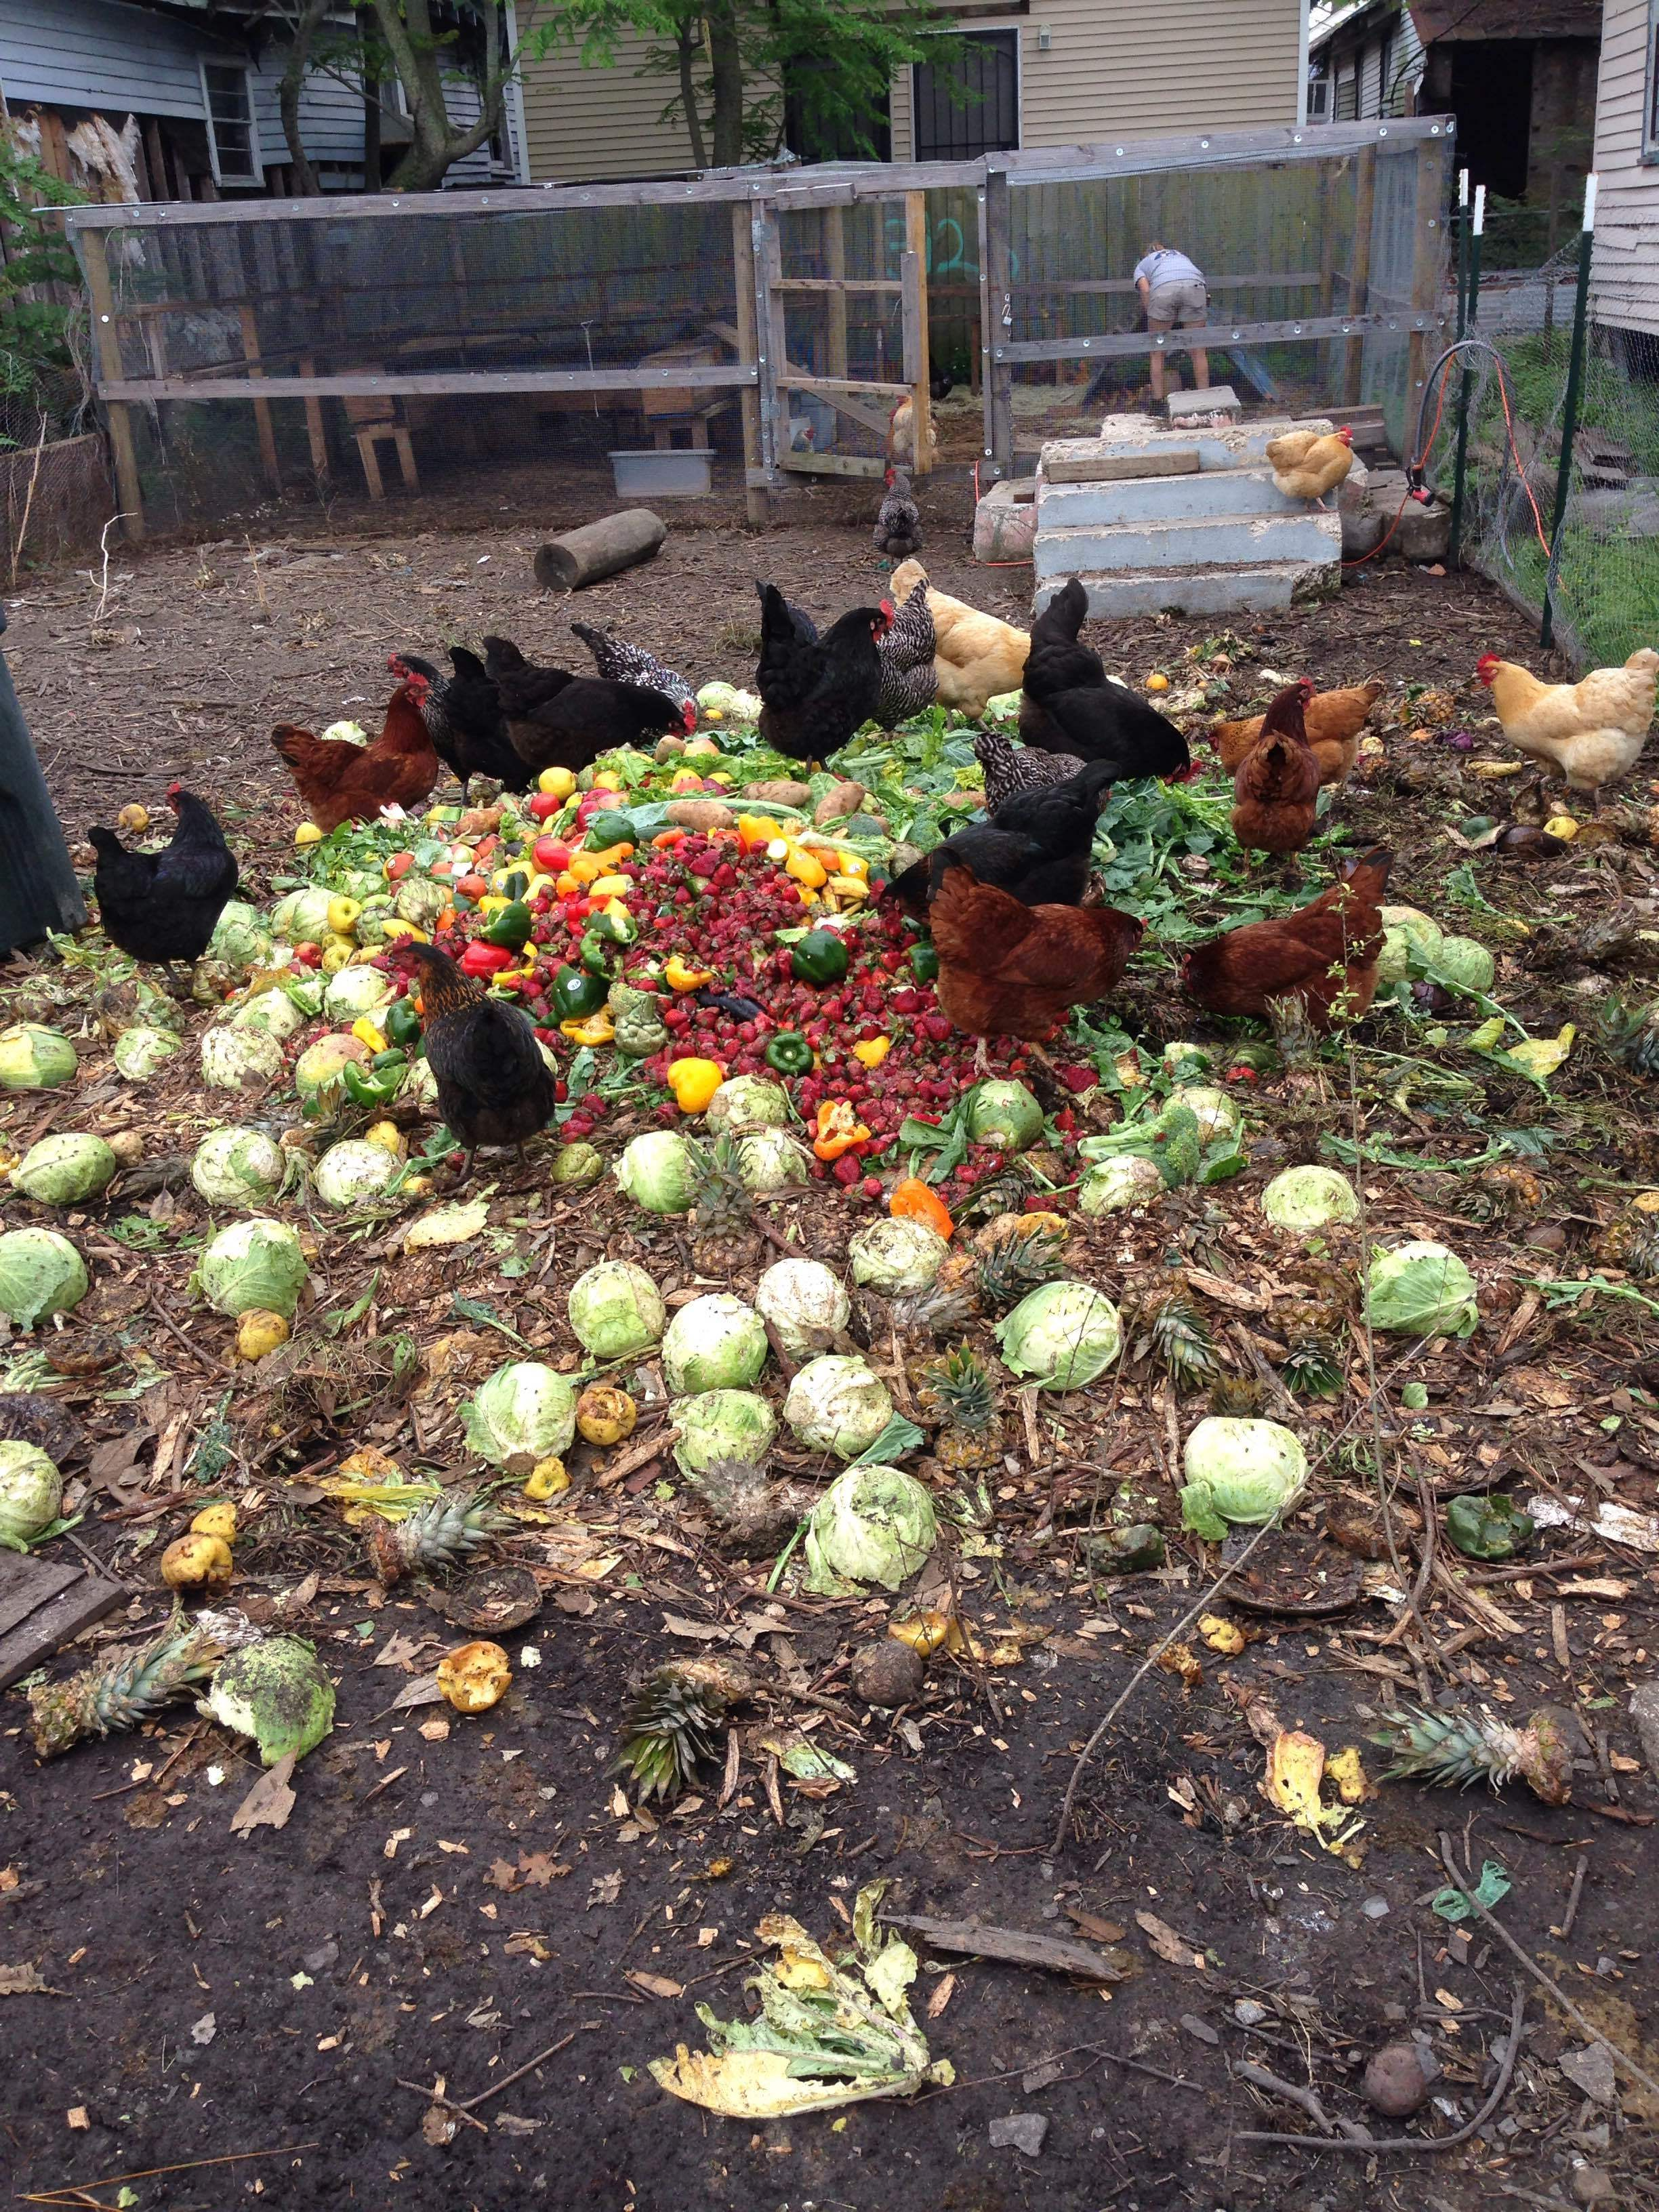 Yummmm! Our egg-laying hens feasting and helping us make compost